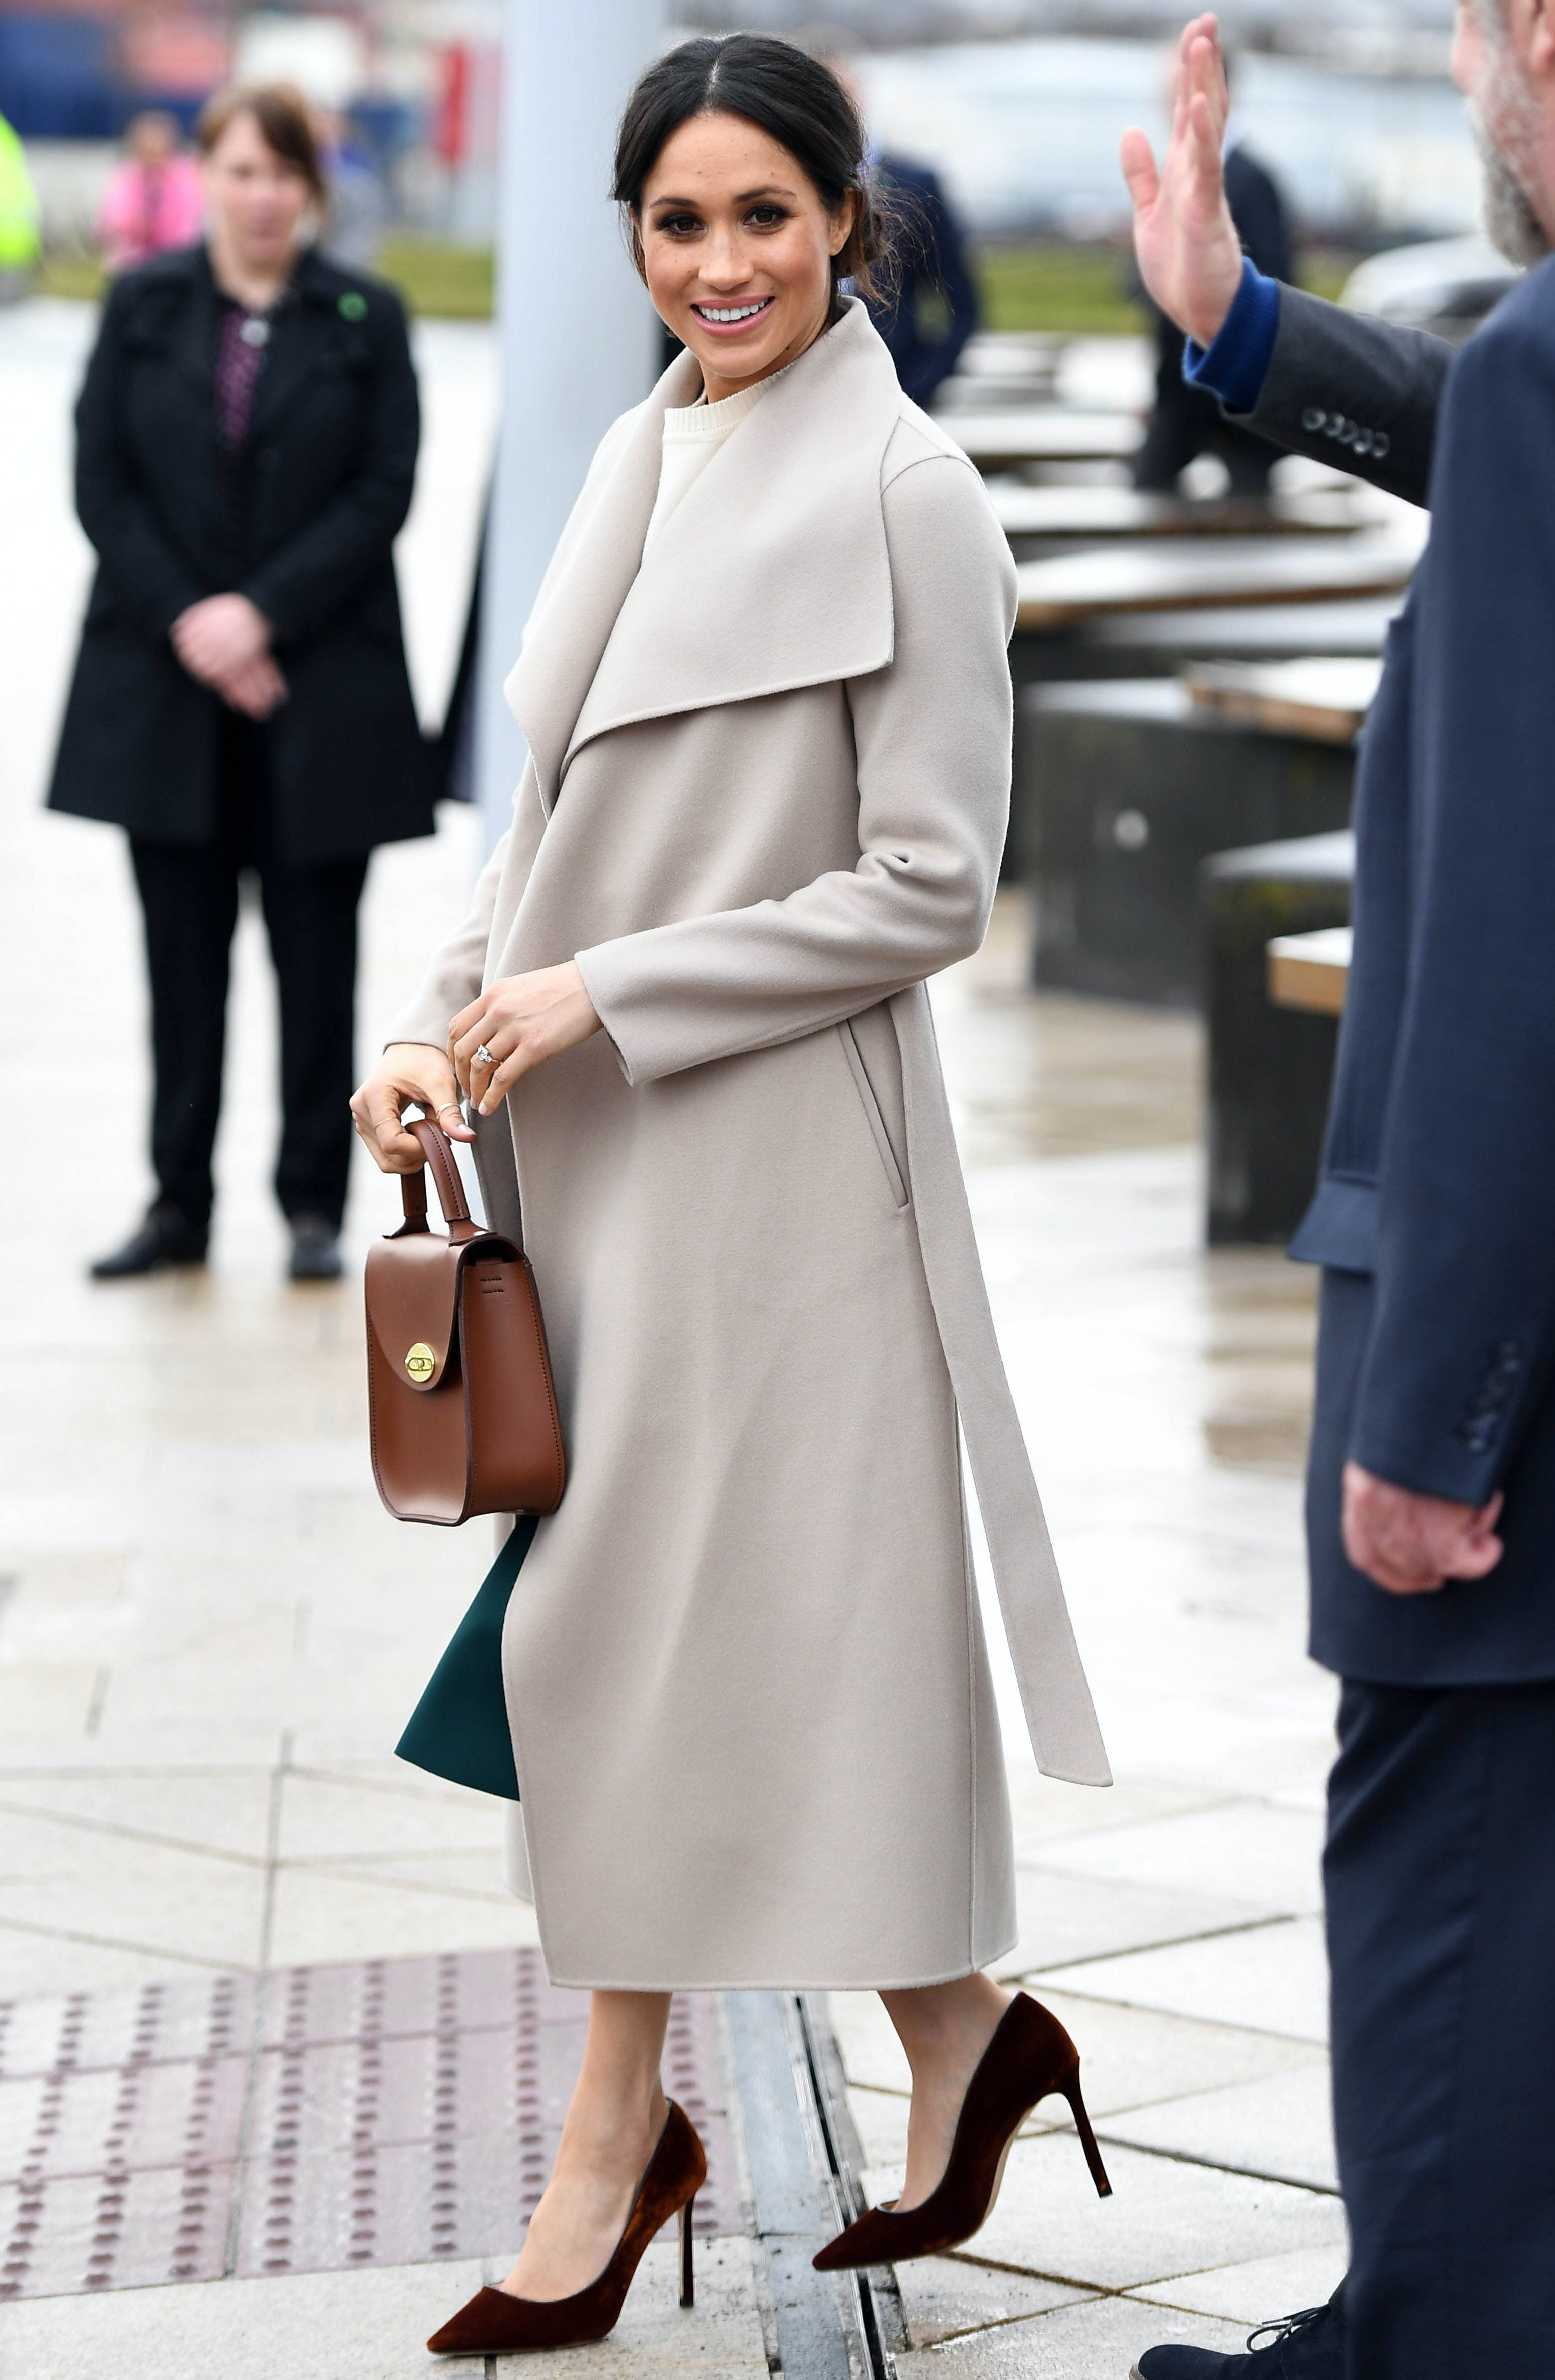 Meghan Markle wearing a Mackage coat on a visit to Belfast | Source: Andrew Parsons - Pool/Getty Images